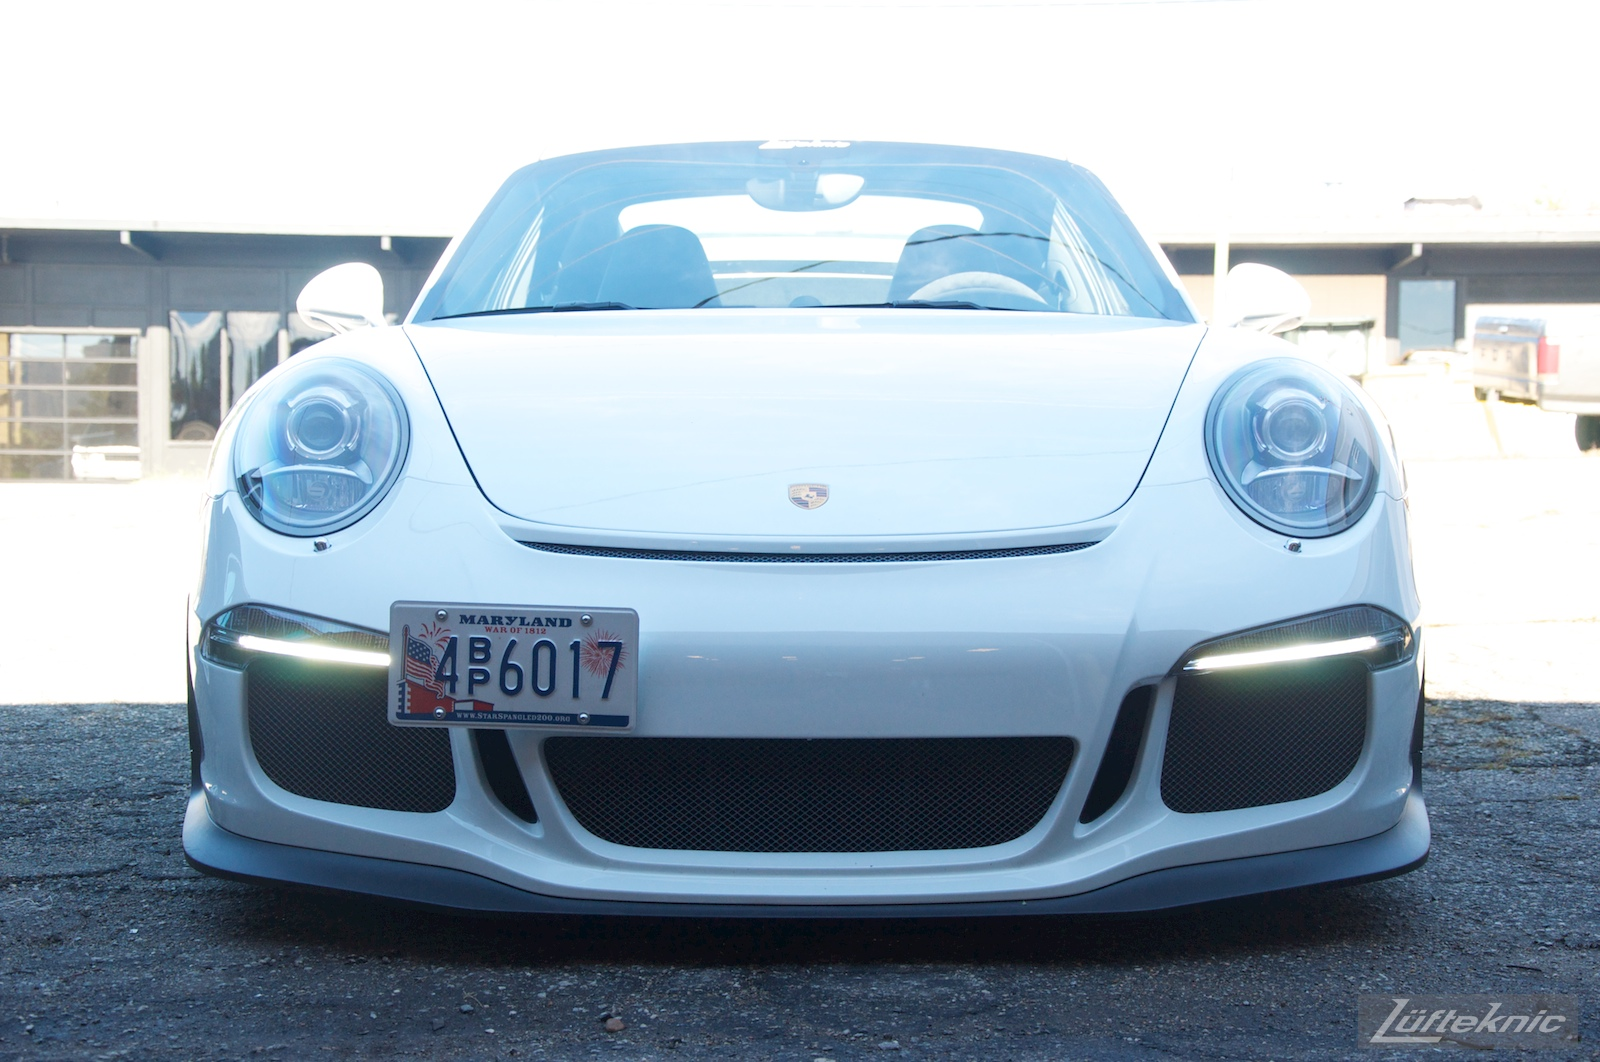 Low angle front profile of the Lüfteknic Porsche 991 GT3